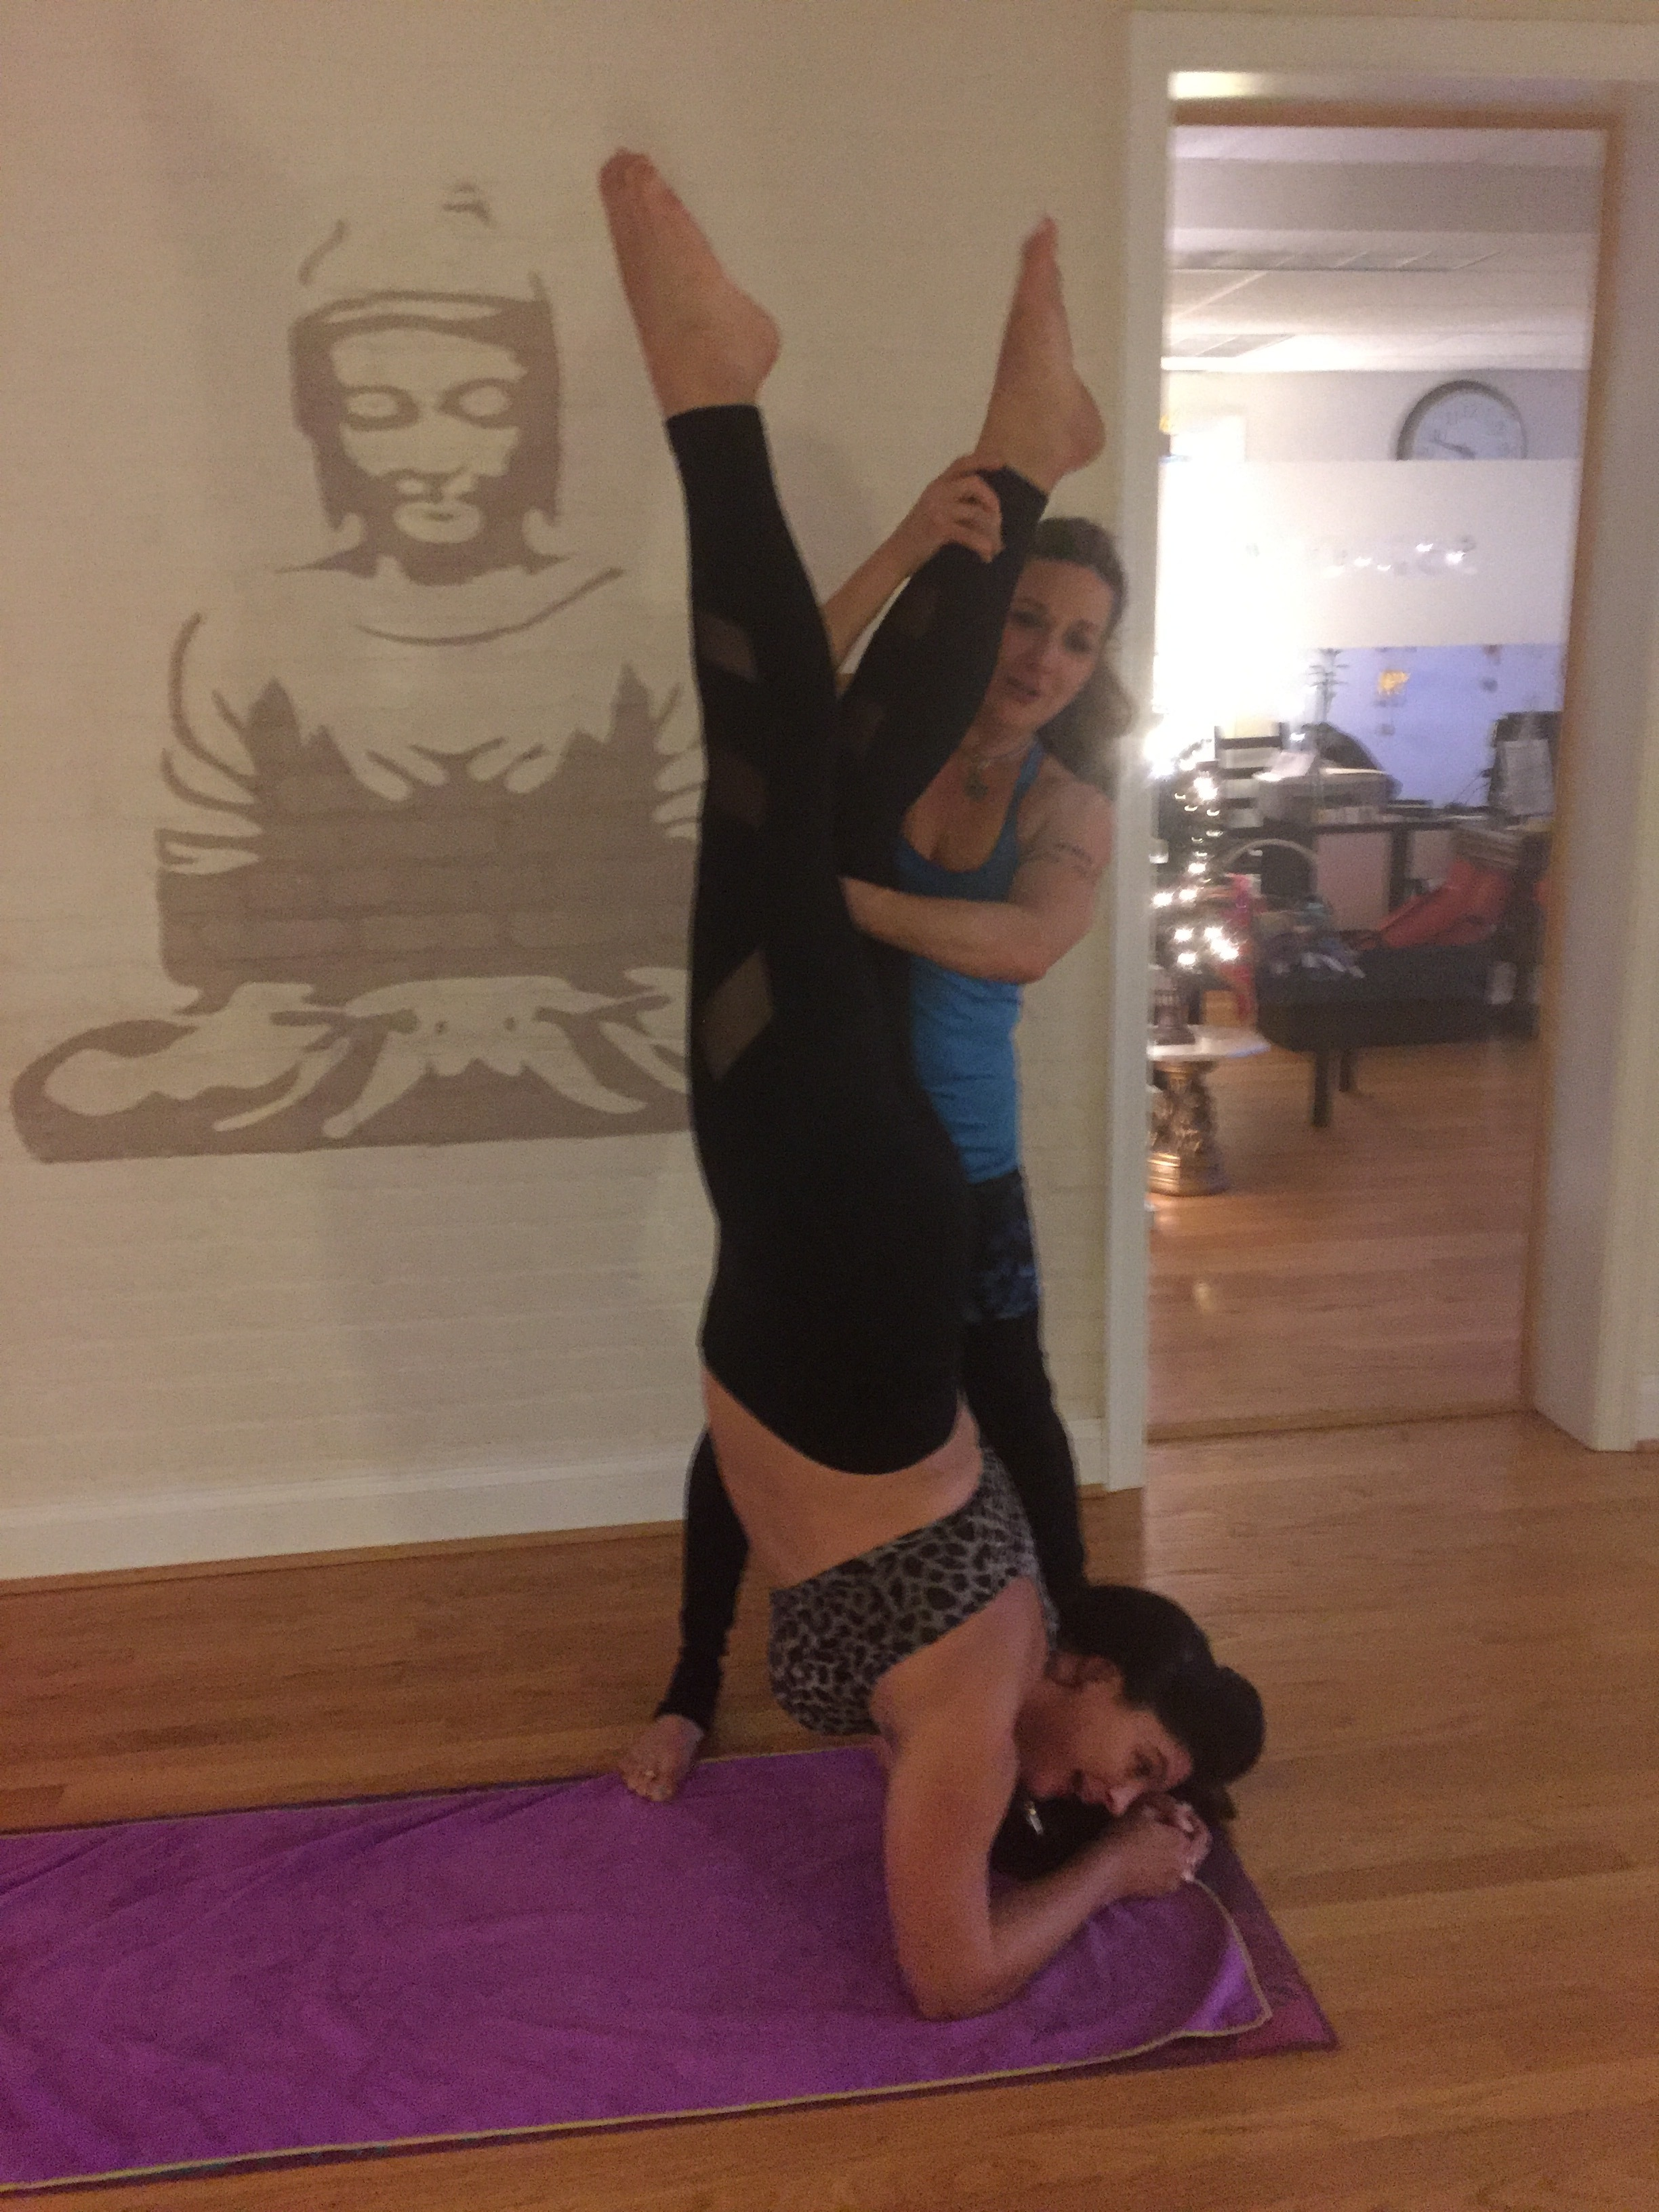 Silly fun with an assisted inversion, courtesy of Ginny at 532yoga!